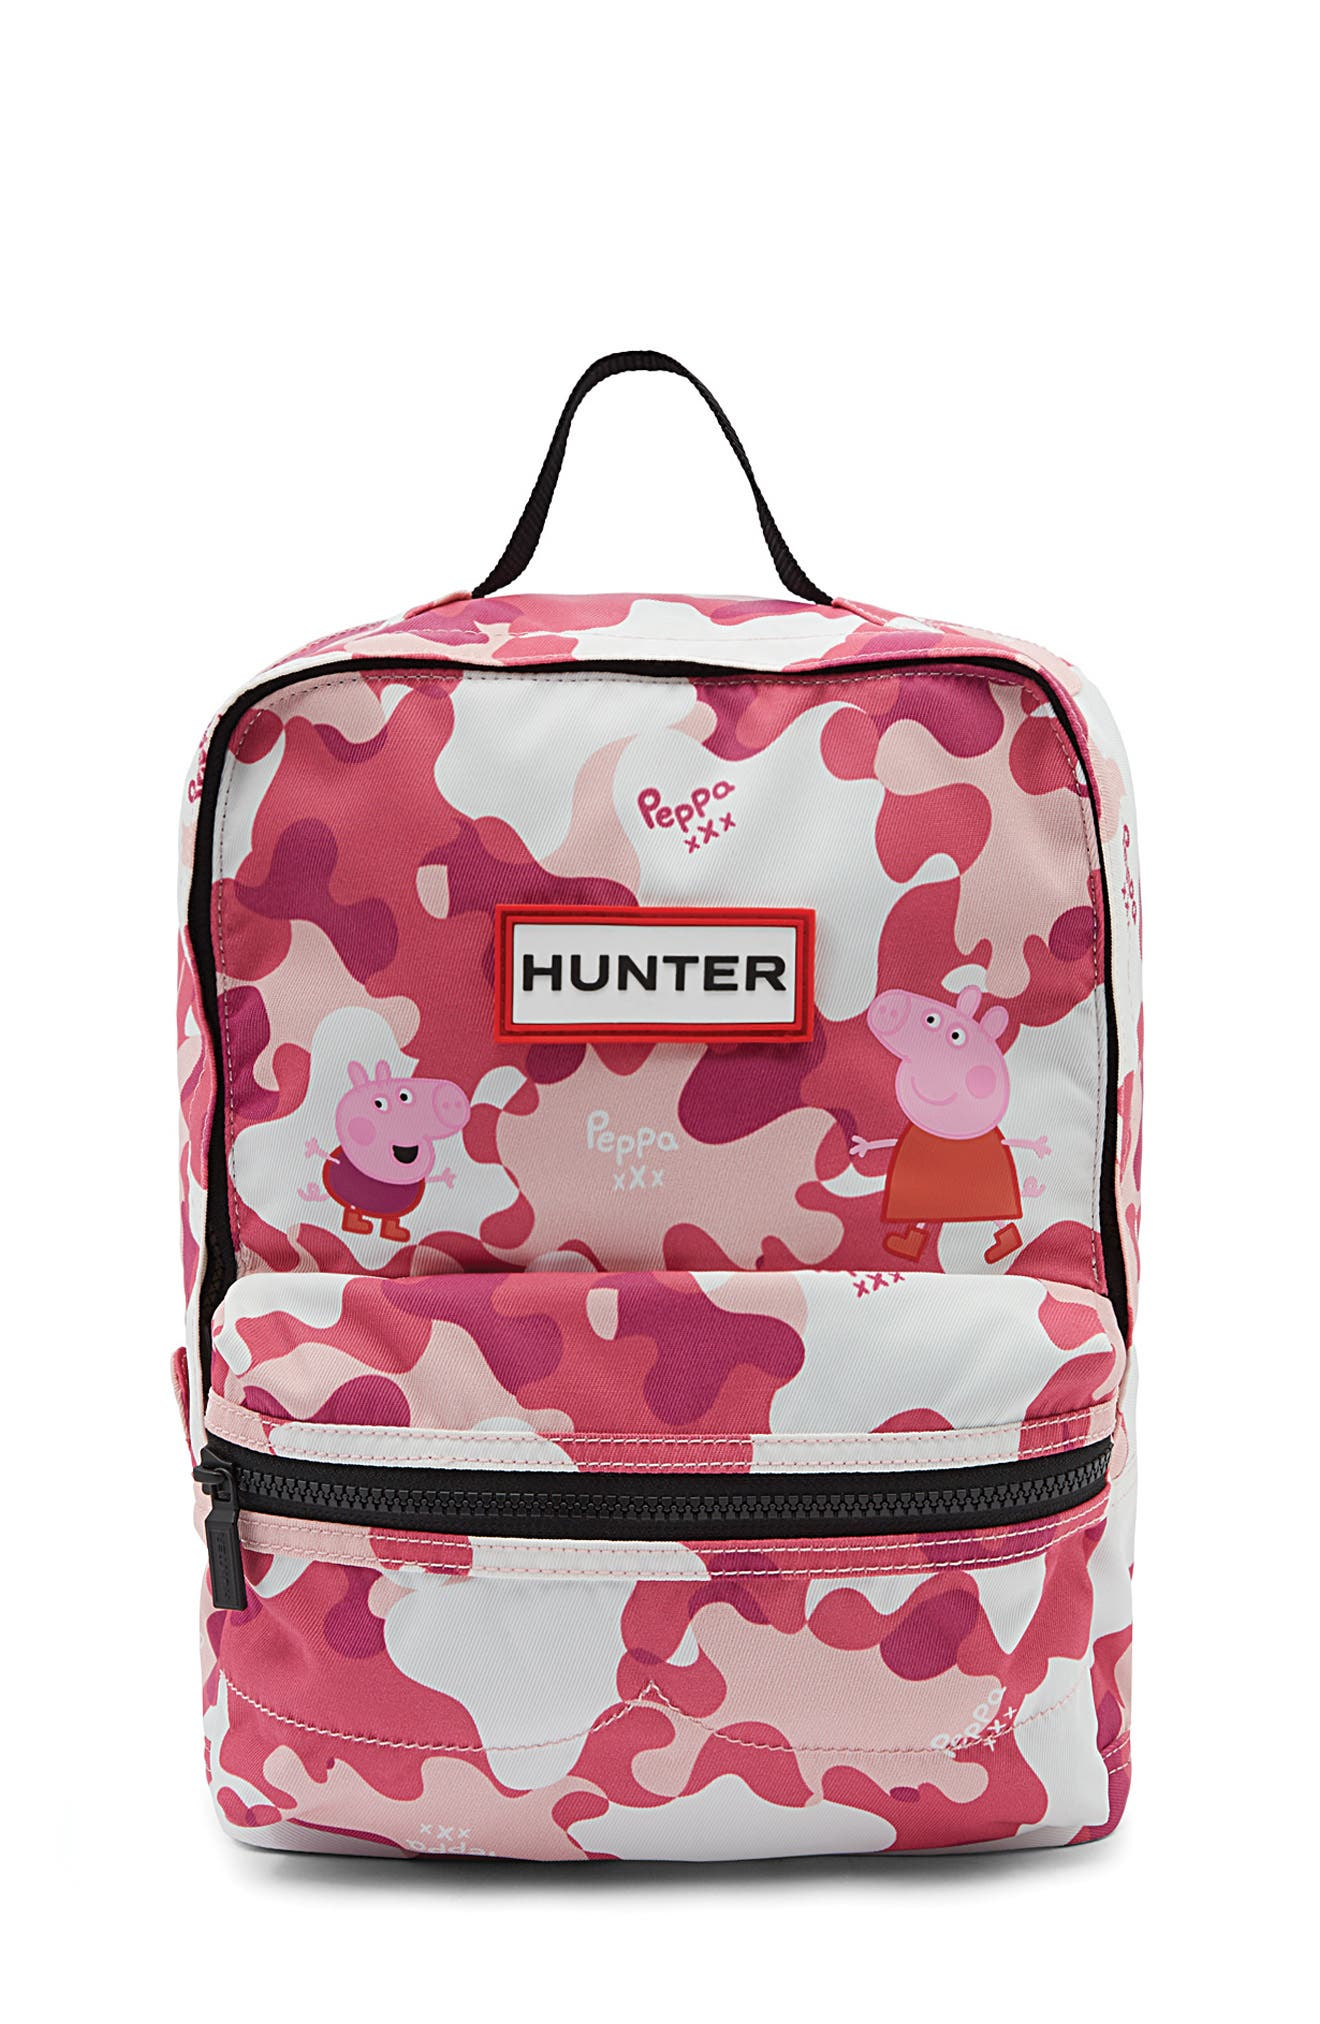 Girls Hunter Peppa Muddy Puddles Nylon Backpack  Pink